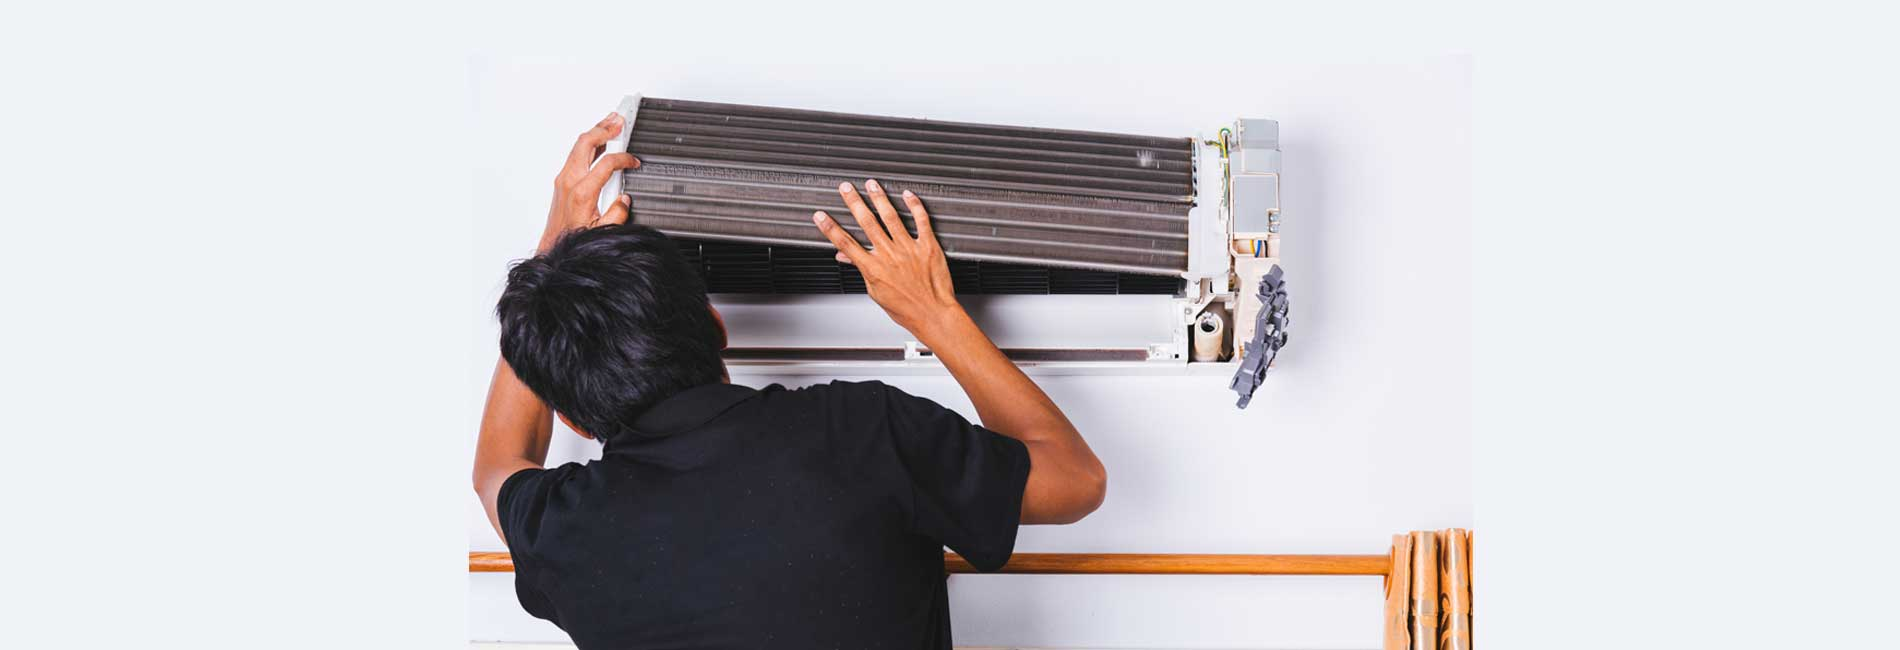 Panasonic AC Installation in Palavanthangal